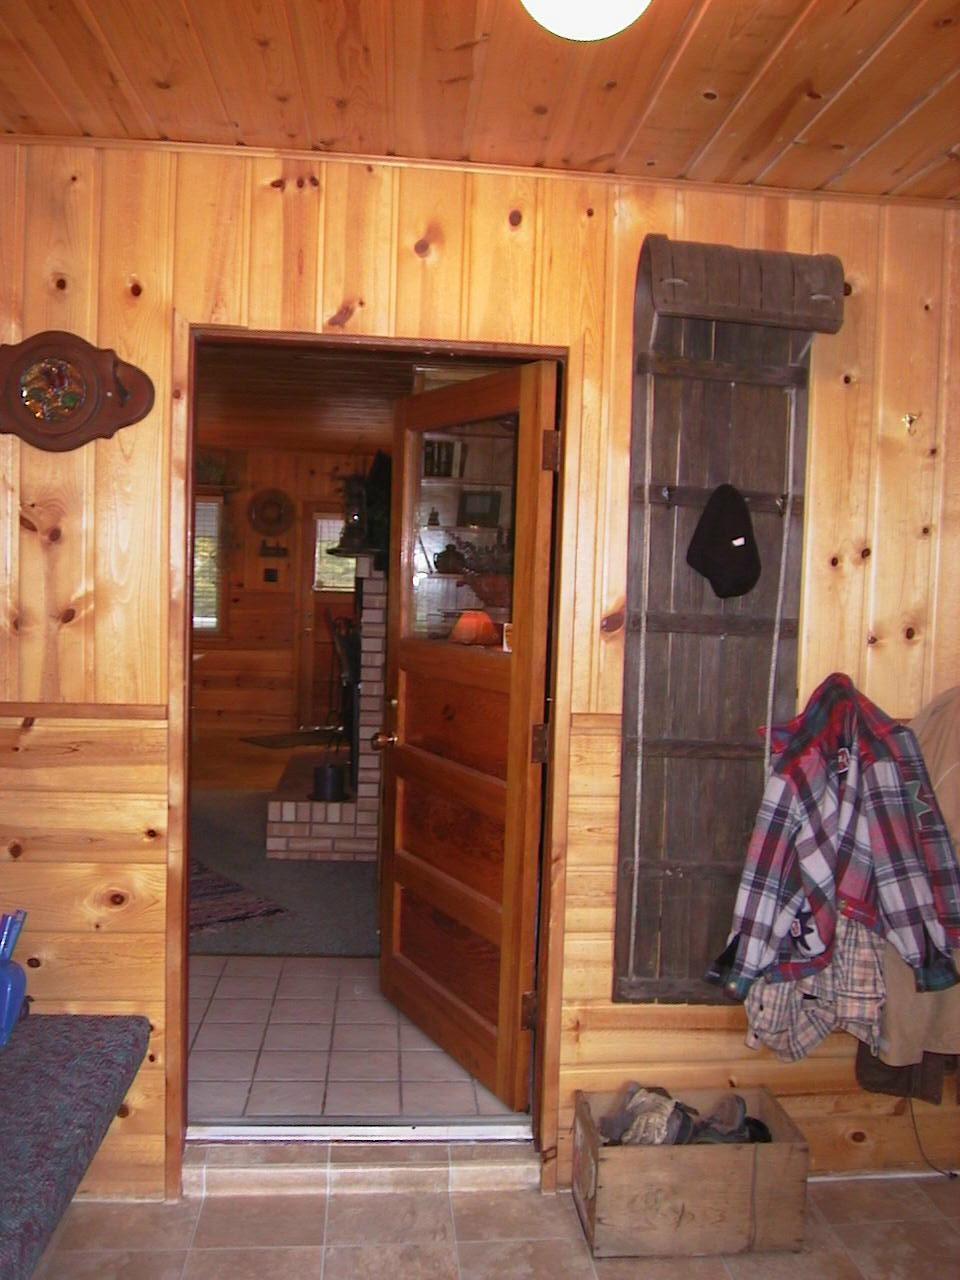 The mud room at the entrance of the cabin